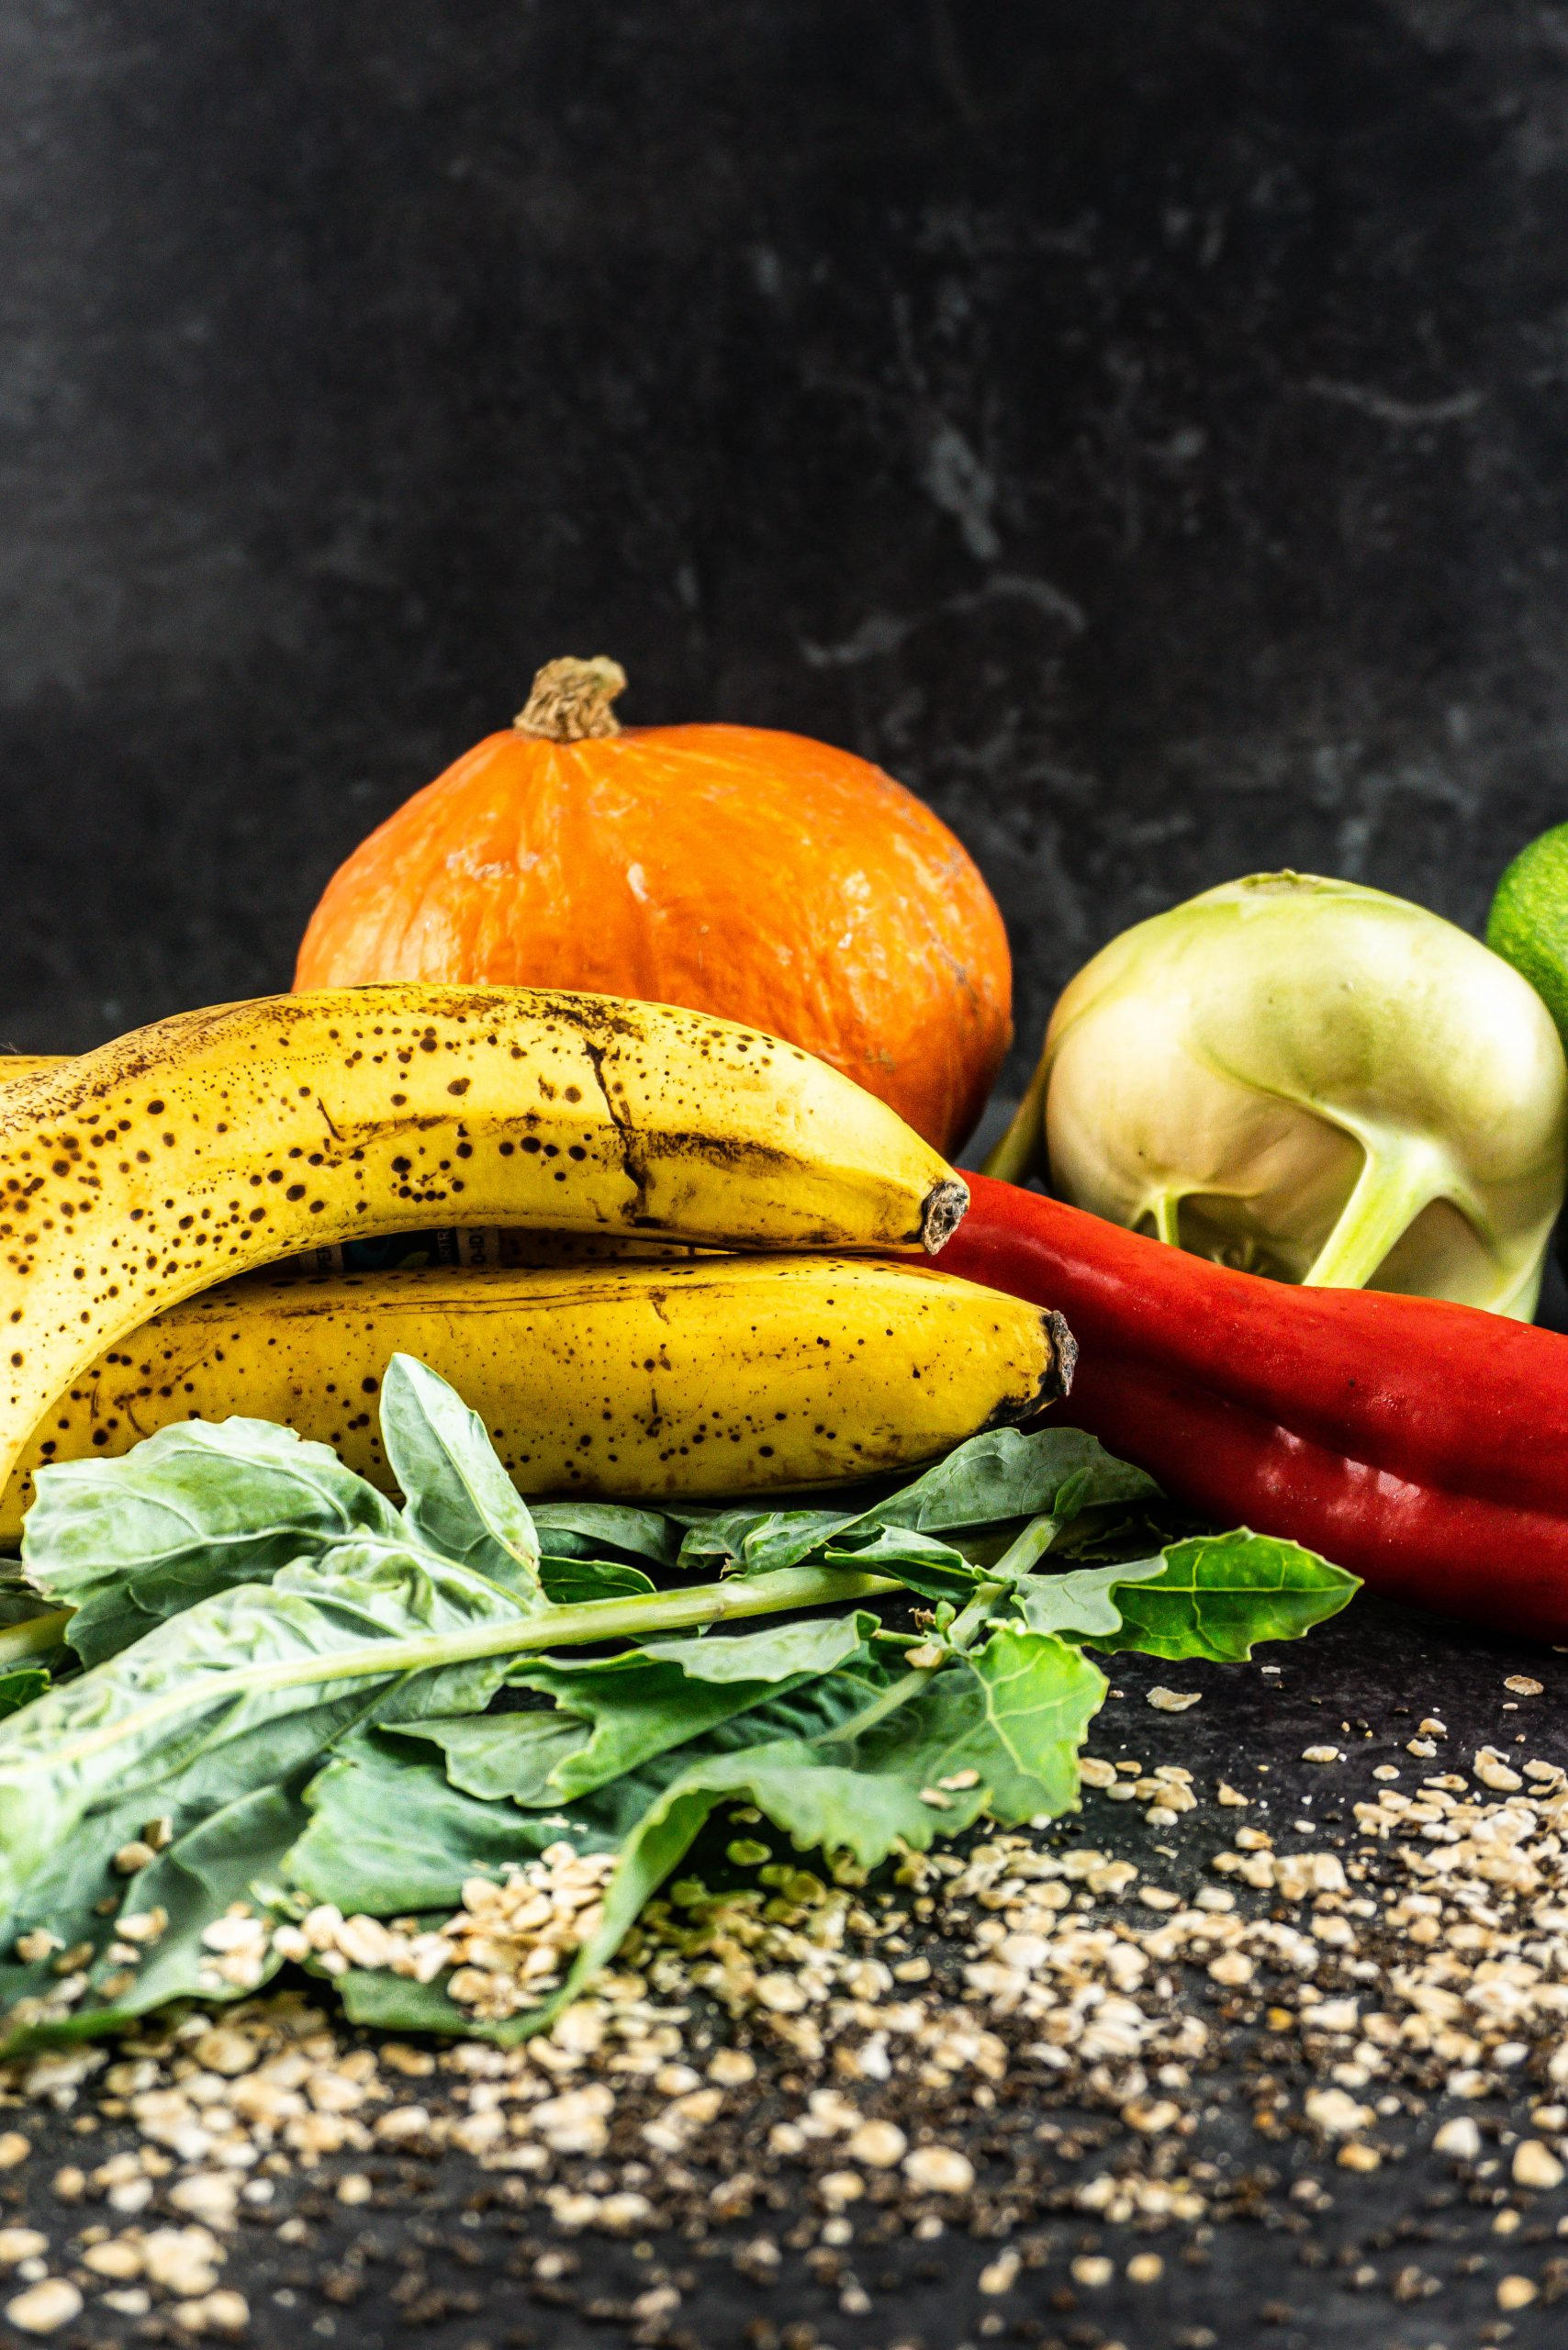 Bananas in focus with pumpkin, kohlrabi, and pepper visible in the background